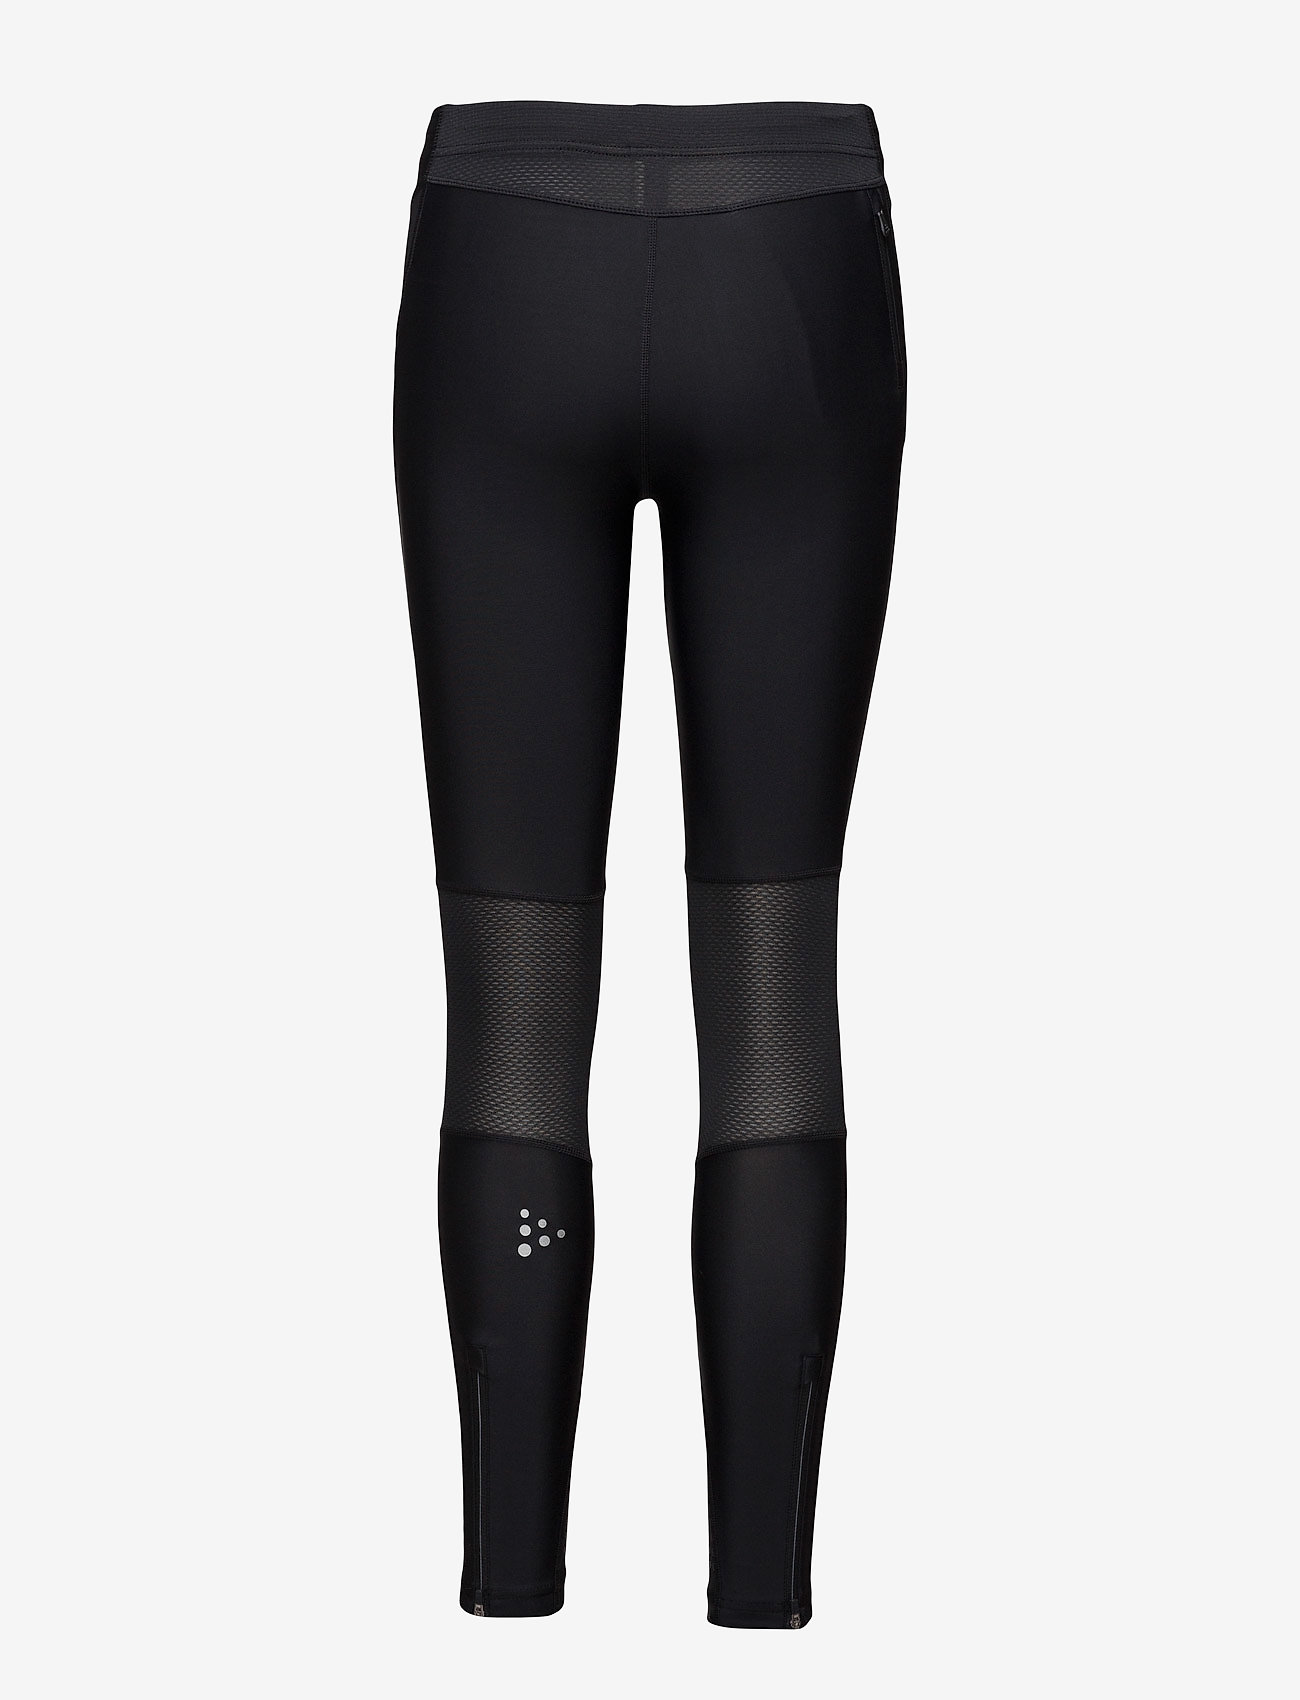 Craft - GRIT TIGHTS  - running & training tights - black - 1